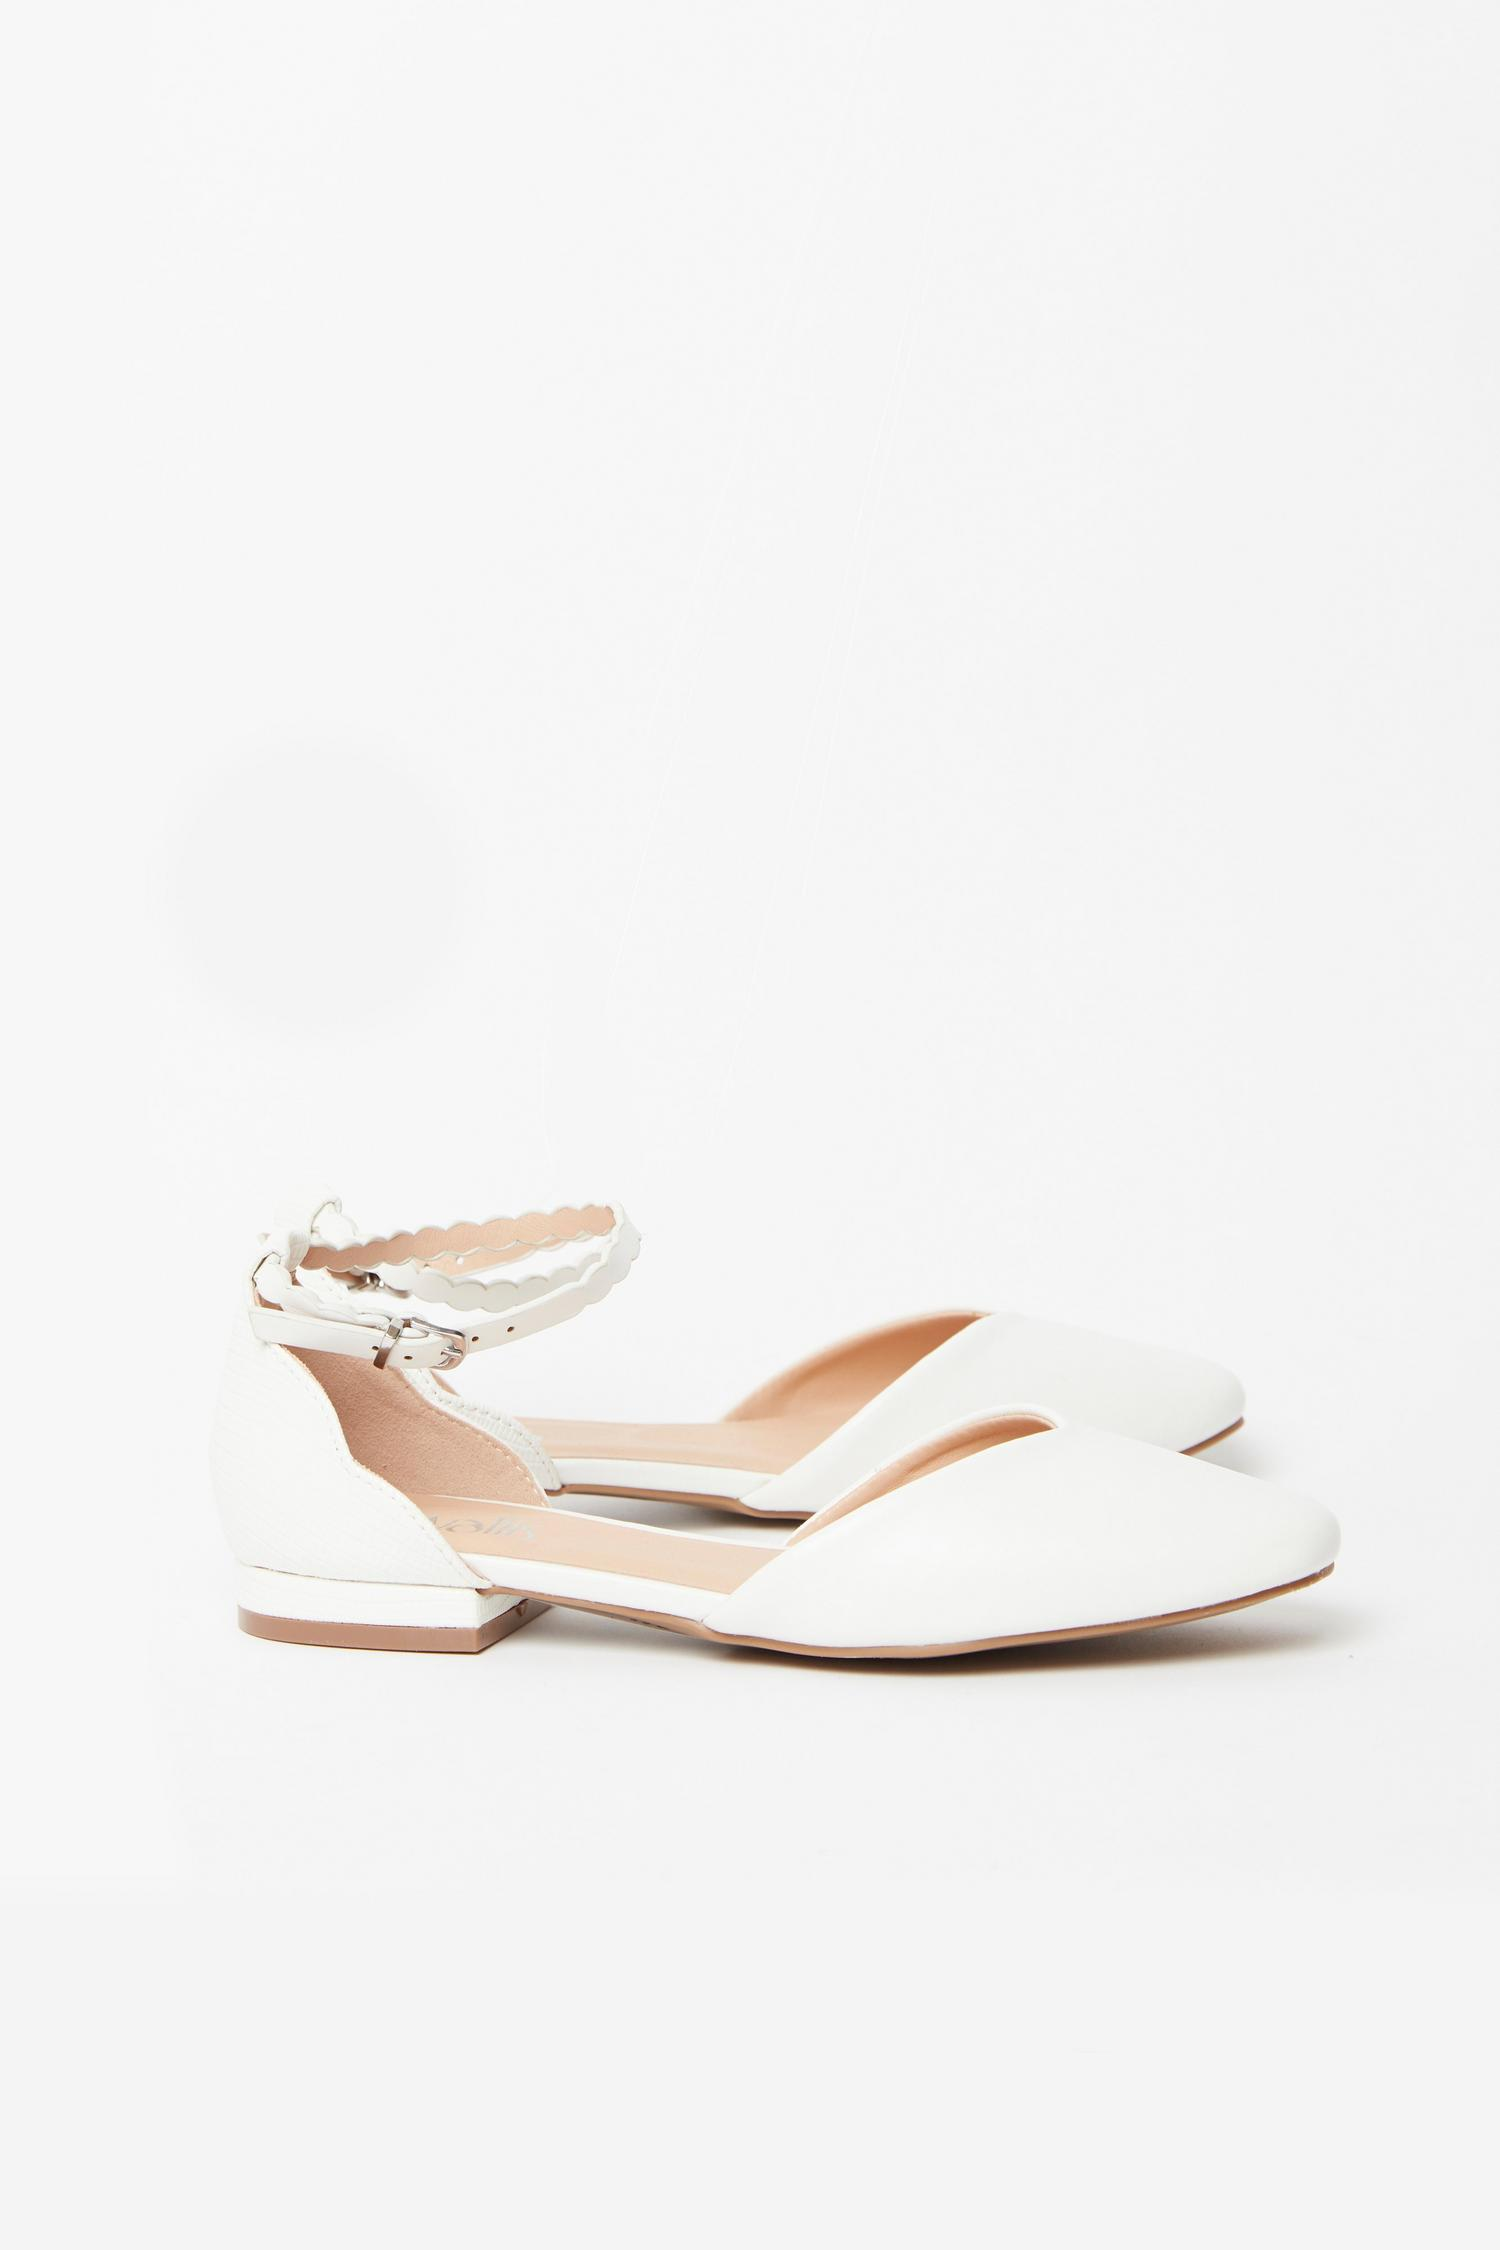 173 White Ankle Strap Shoe image number 1